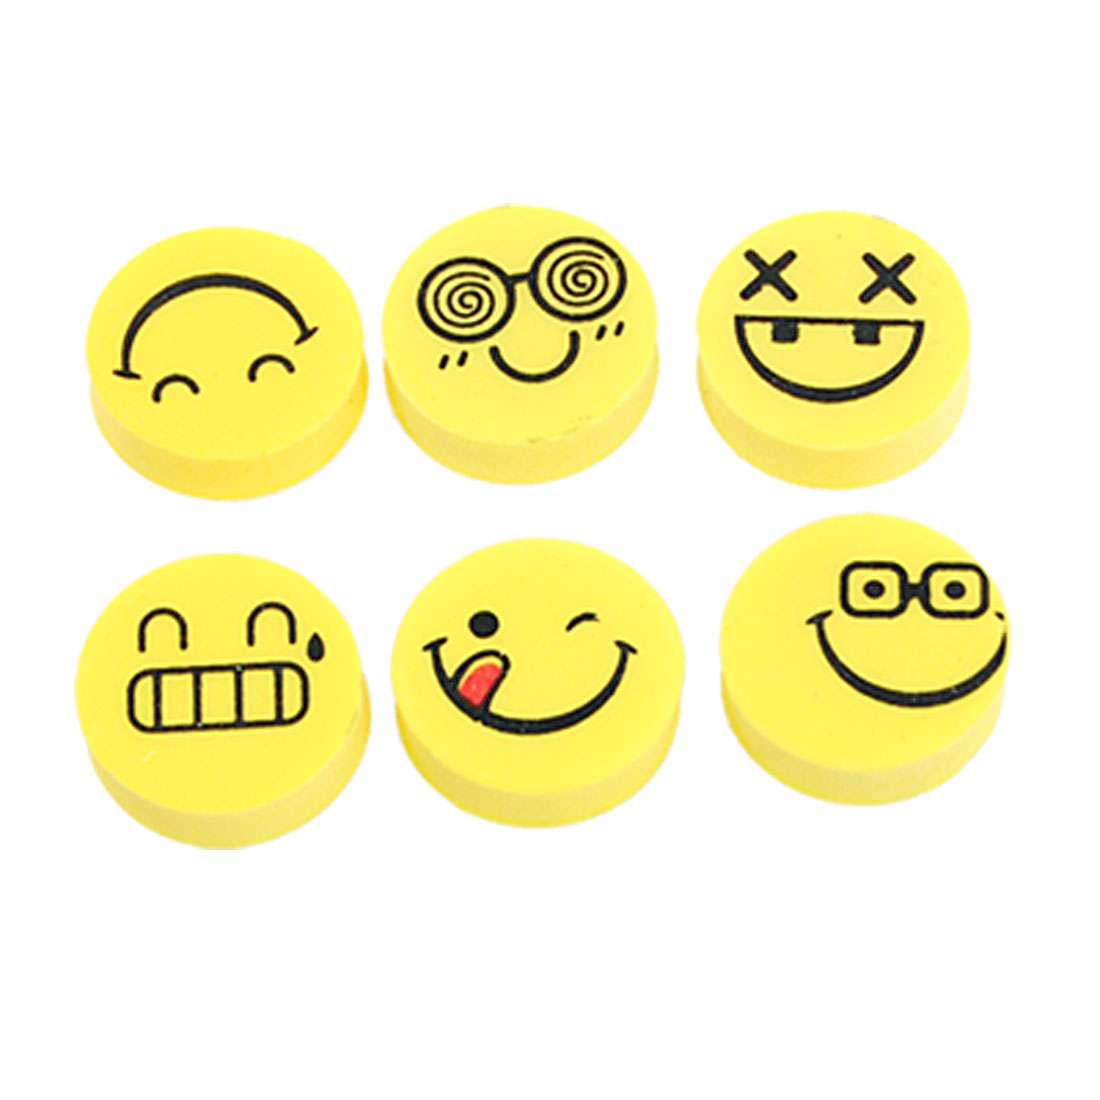 6 Pcs Smile Face Expressions Rubber Stationery Erasers Yellow